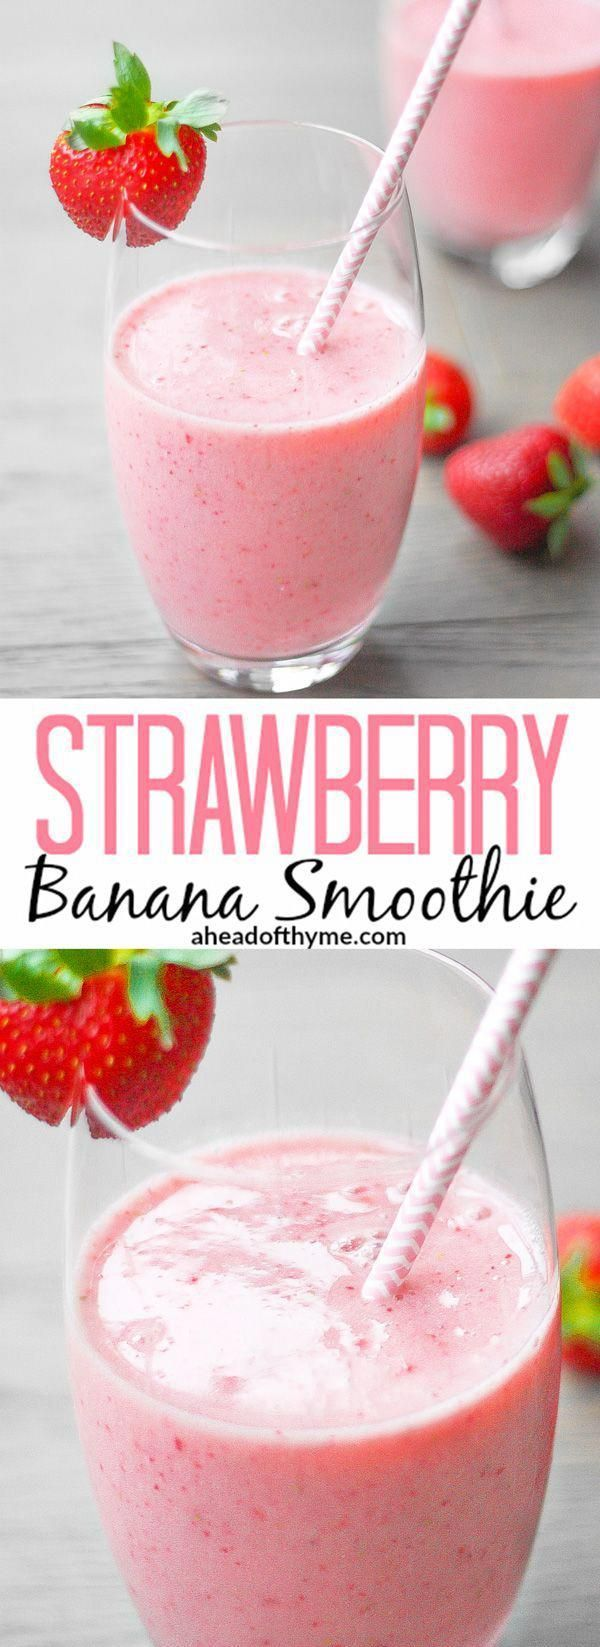 Strawberry Banana Smoothie: This delicious and healthy strawberry banana #smoothie contains the perfect combination of strawberries and banana to leave you refreshed and sustained | aheadofthyme.com via @aheadofthyme #healthystrawberrybananasmoothie Strawberry Banana Smoothie: This delicious and healthy strawberry banana #smoothie contains the perfect combination of strawberries and banana to leave you refreshed and sustained | aheadofthyme.com via @aheadofthyme #healthystrawberrybananasmoothie #strawberrybananasmoothie